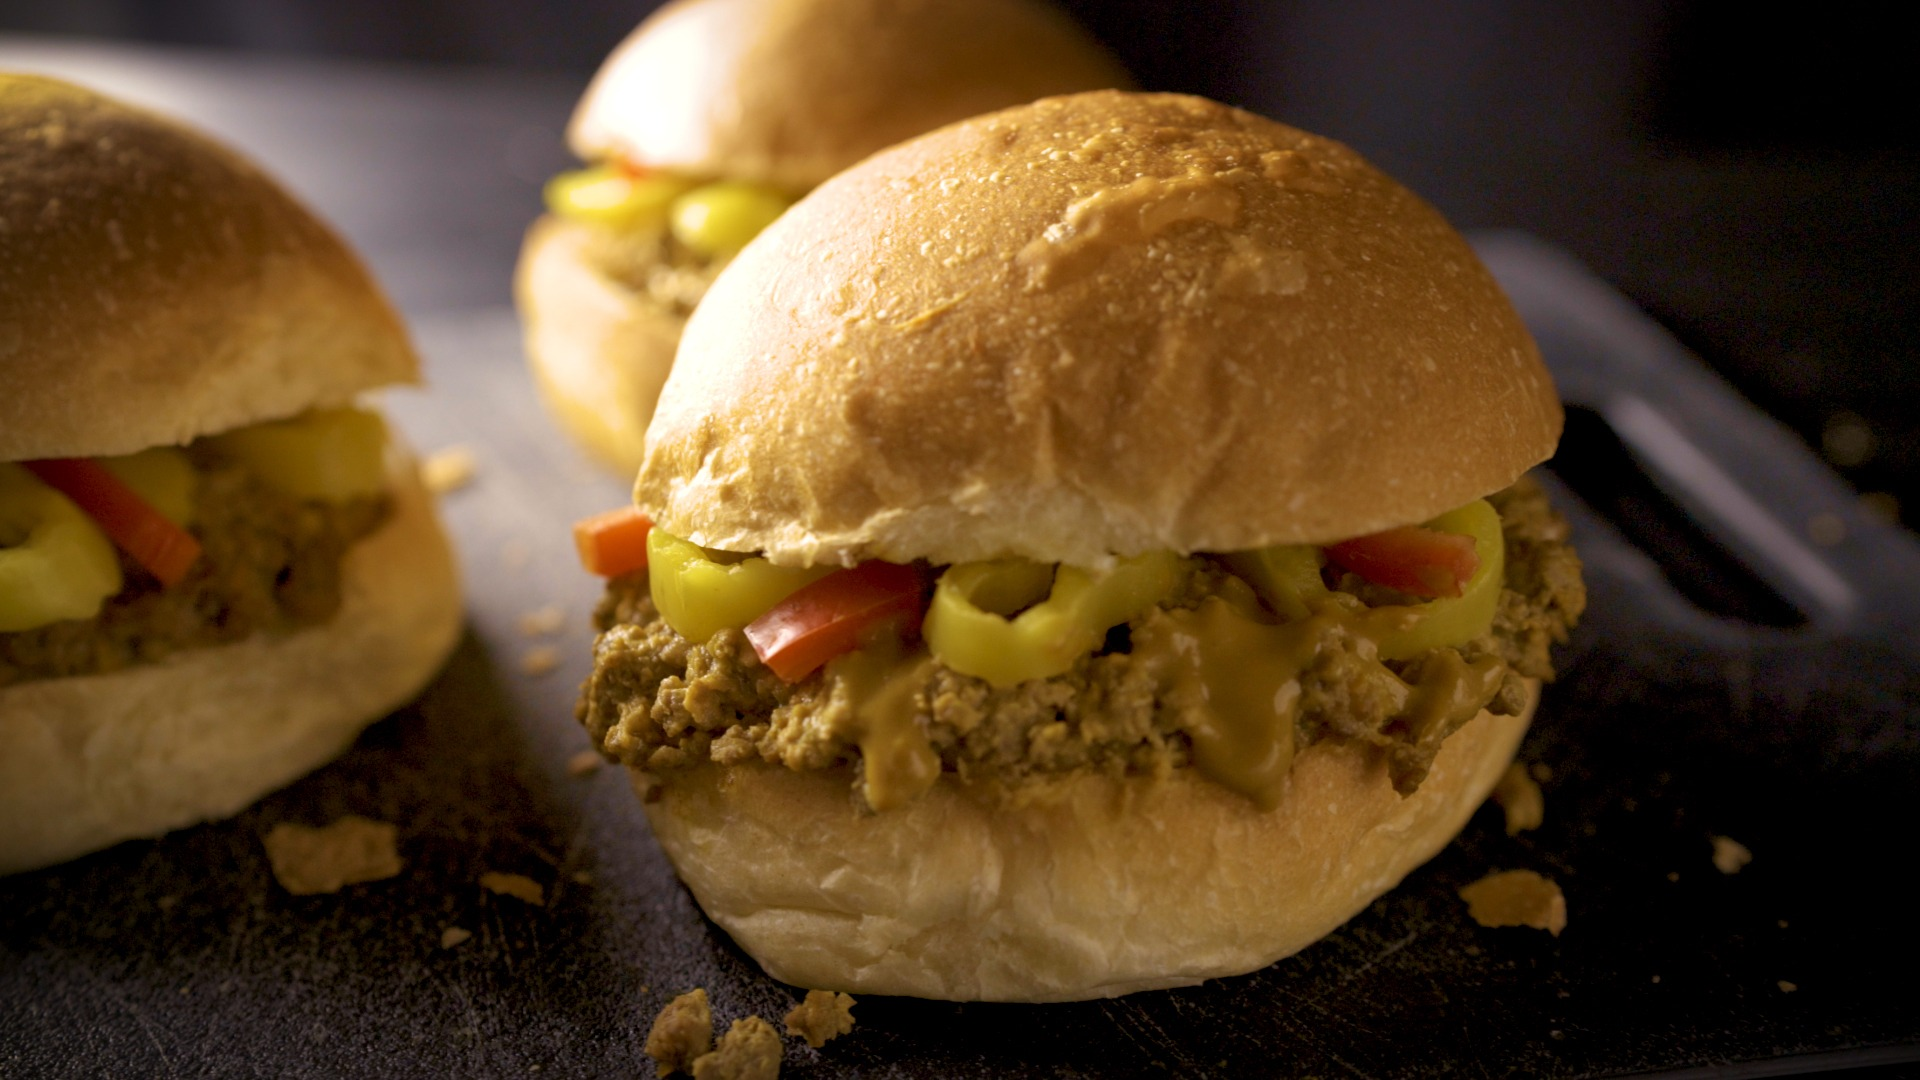 Ground beef sliders with mustard